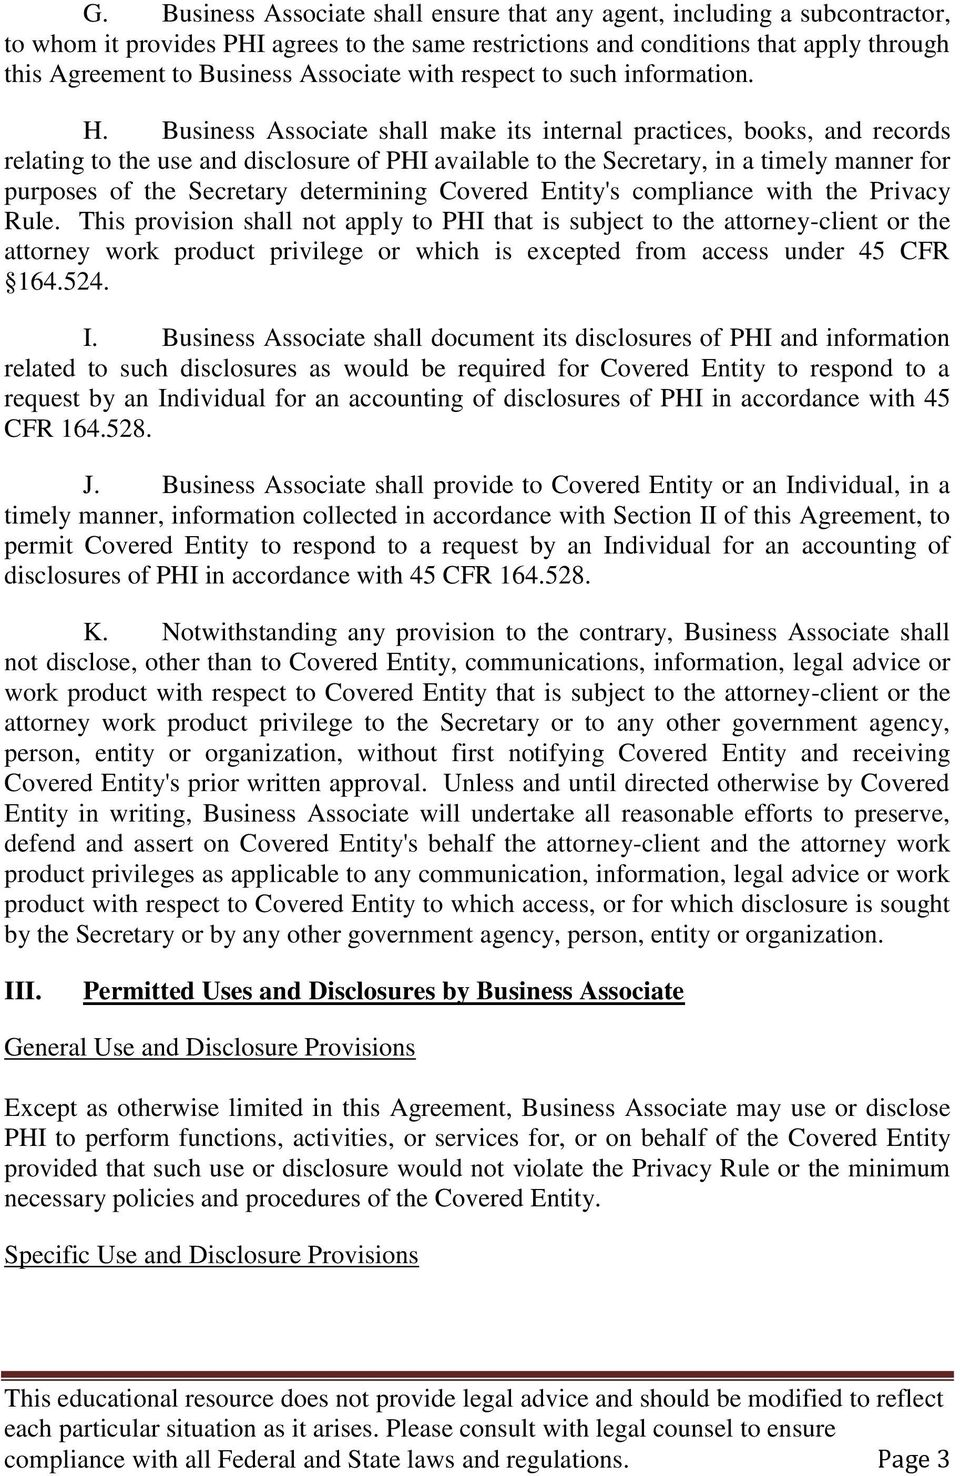 Business Associate shall make its internal practices, books, and records relating to the use and disclosure of PHI available to the Secretary, in a timely manner for purposes of the Secretary